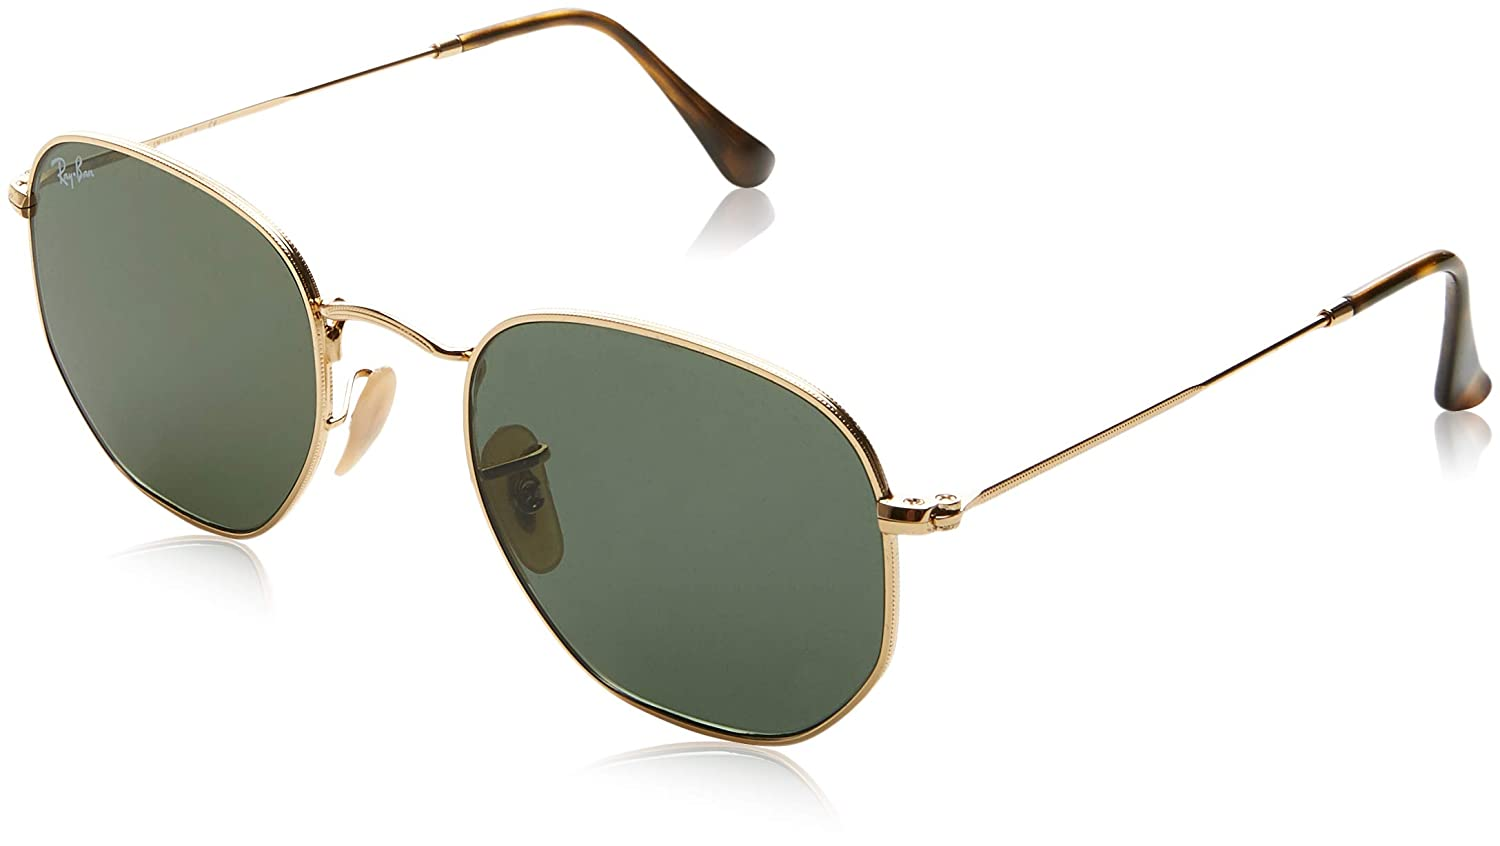 01b77fde8a3 Amazon.com  Ray-Ban Unisex RB3548N Hexagonal Sunglasses  Clothing